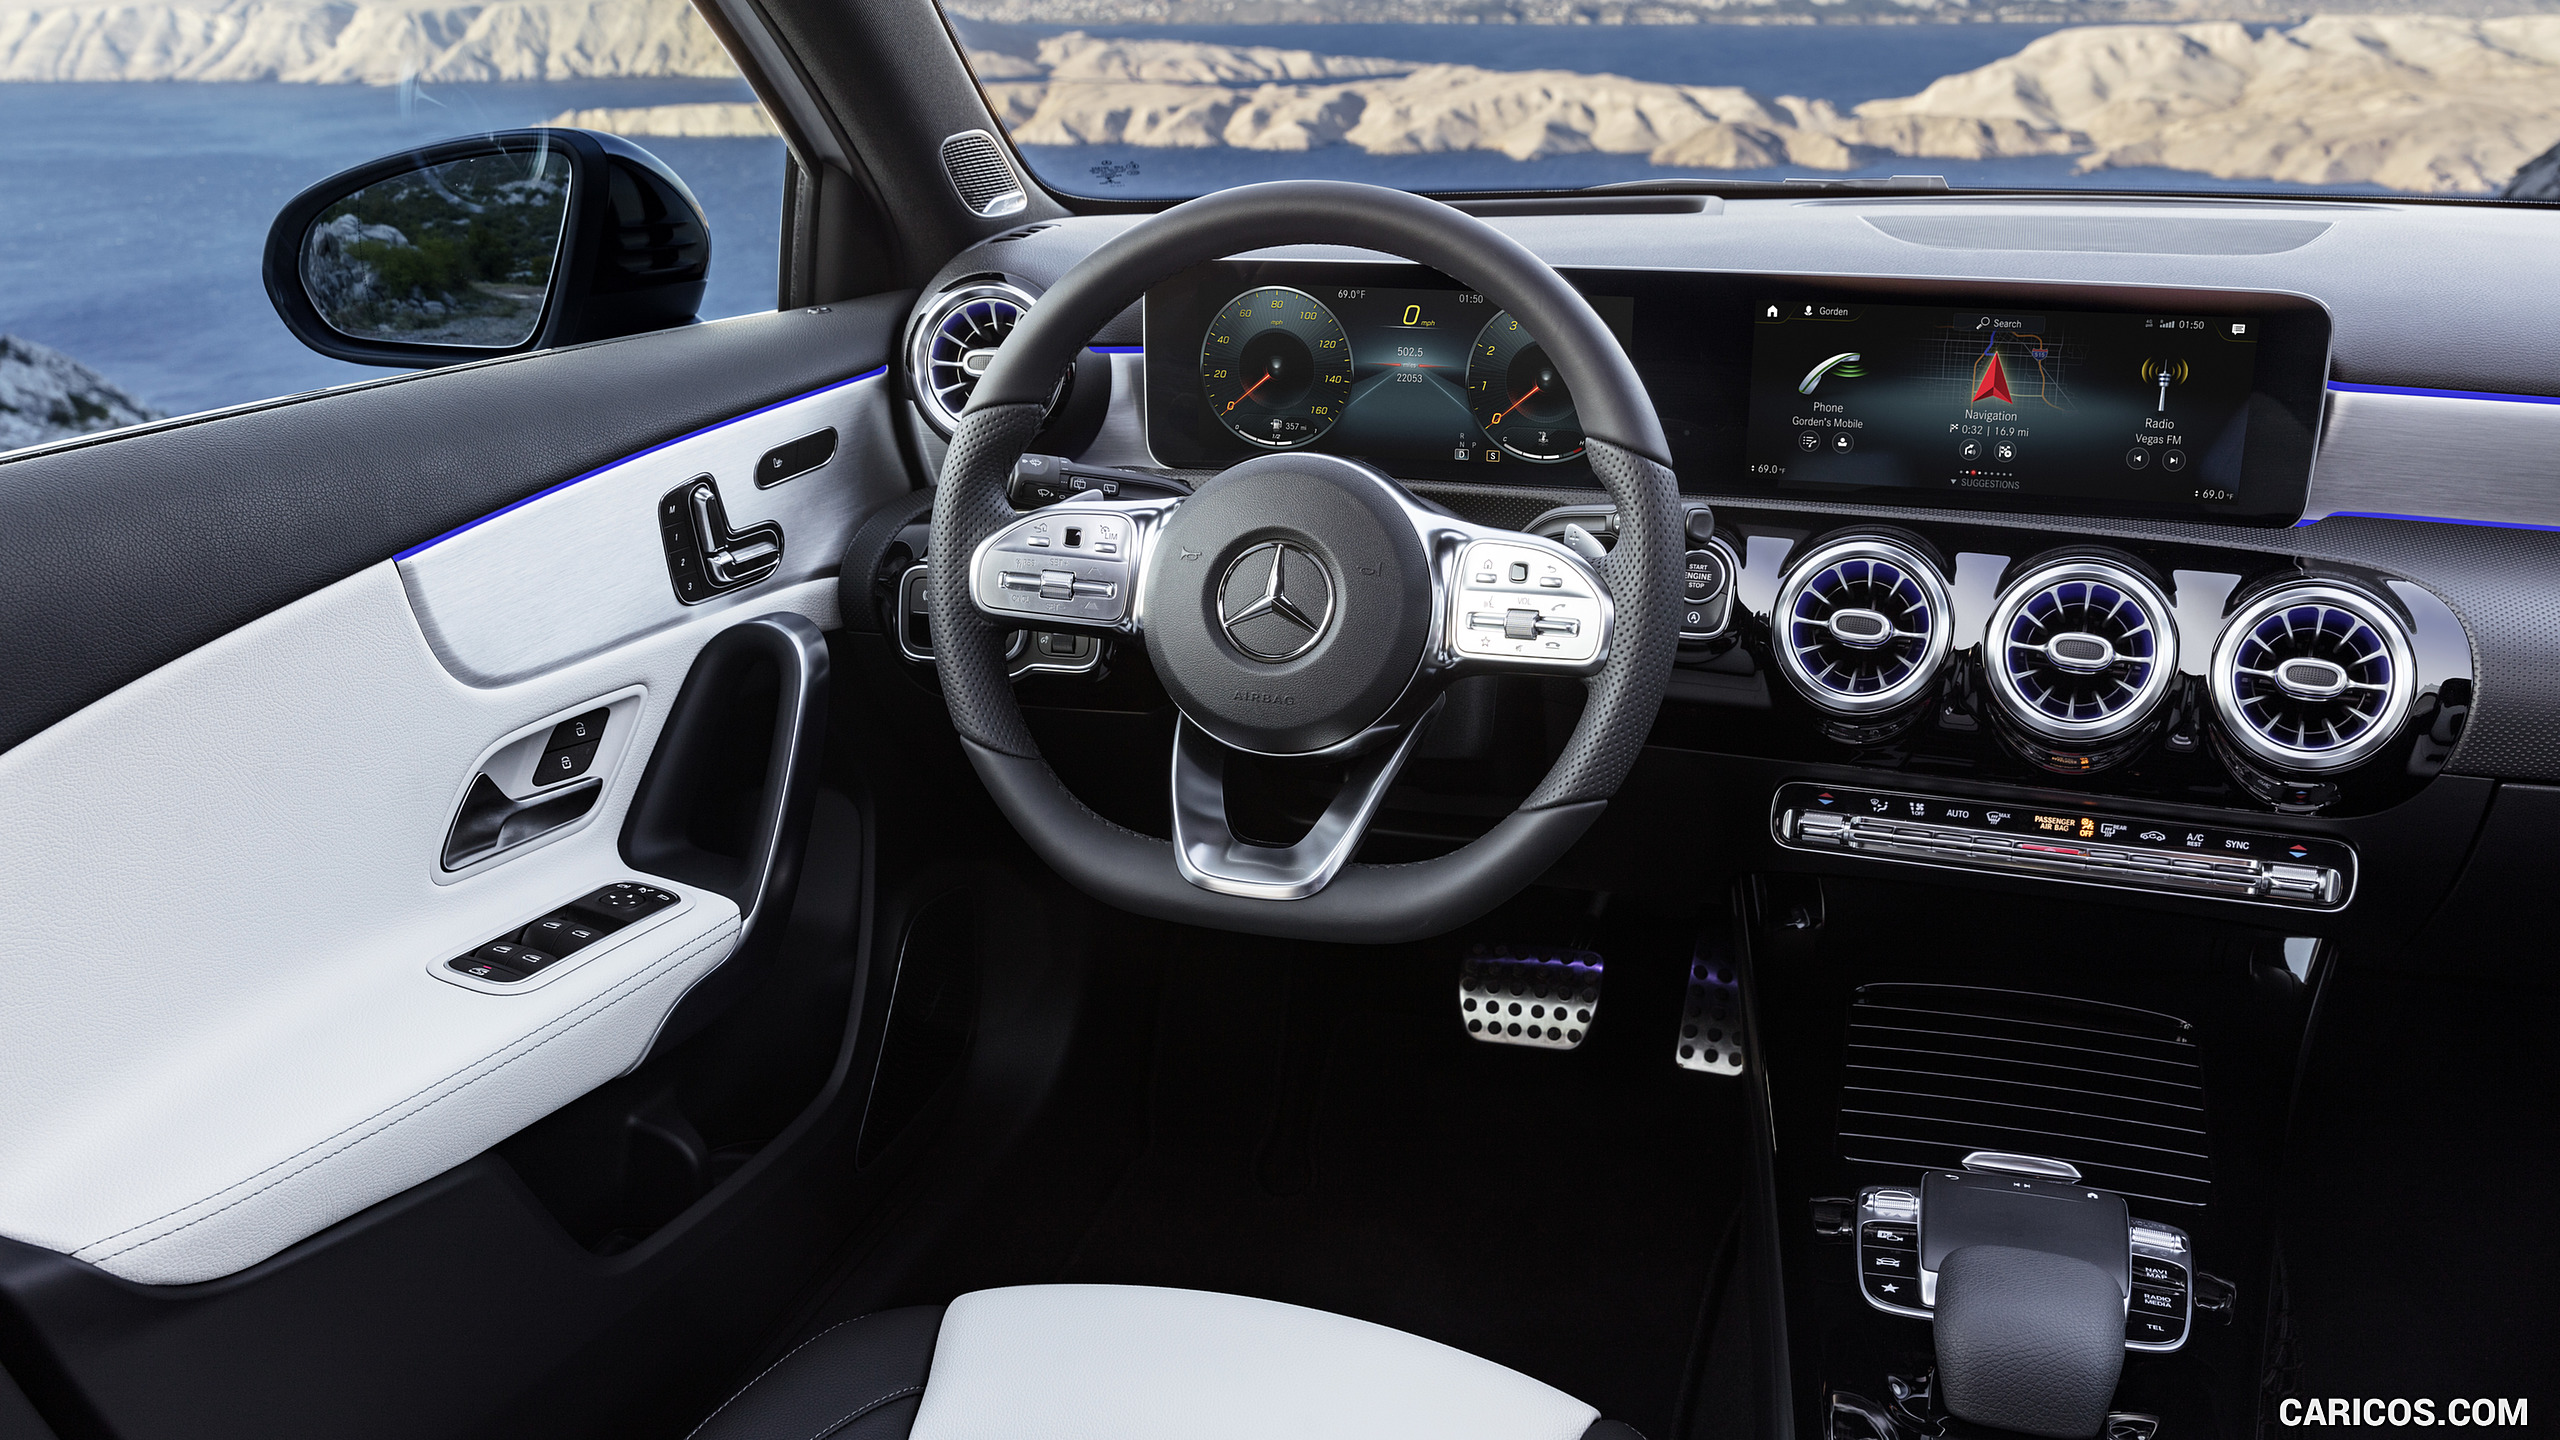 2019 Mercedes Benz A Class   AMG Line nevagreyblack Interior HD 2560x1440